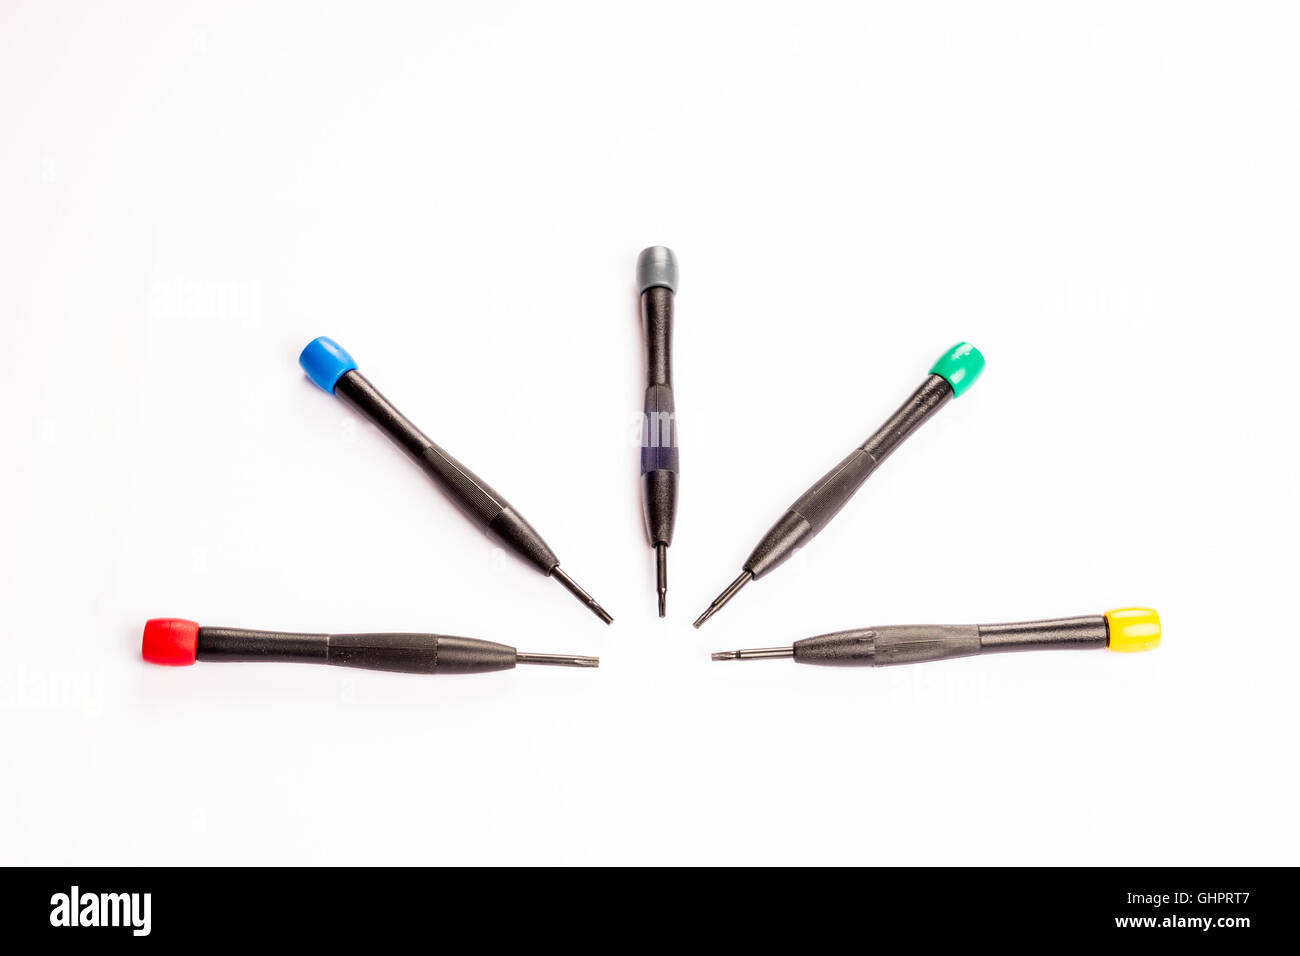 Computer Technician Precision Torx Set on a plain background Stock Photo